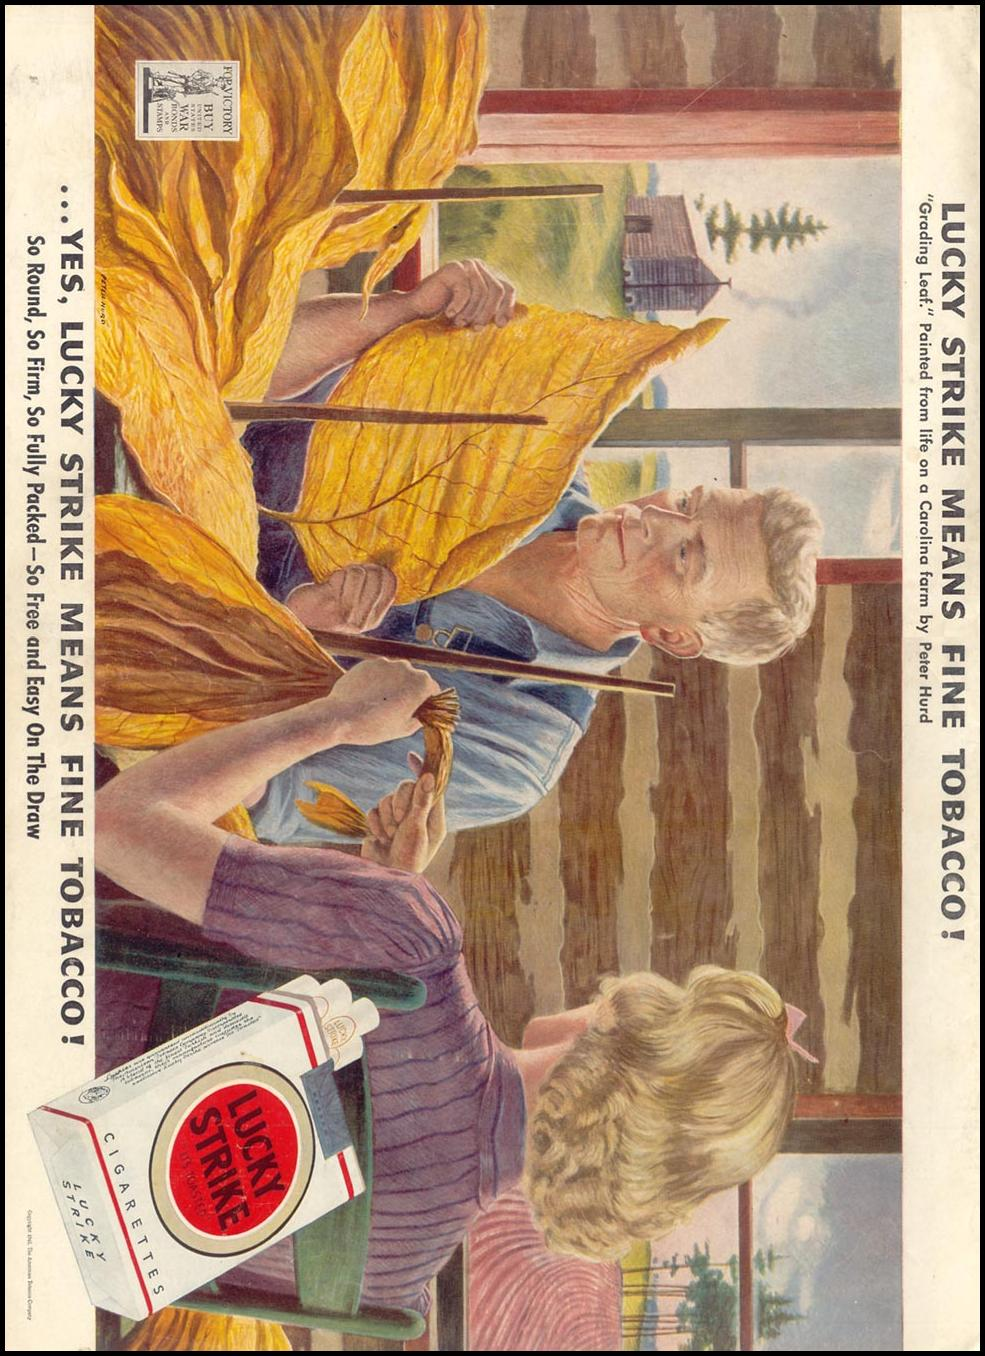 LUCKY STRIKE CIGARETTES LIFE 11/08/1943 BACK COVER